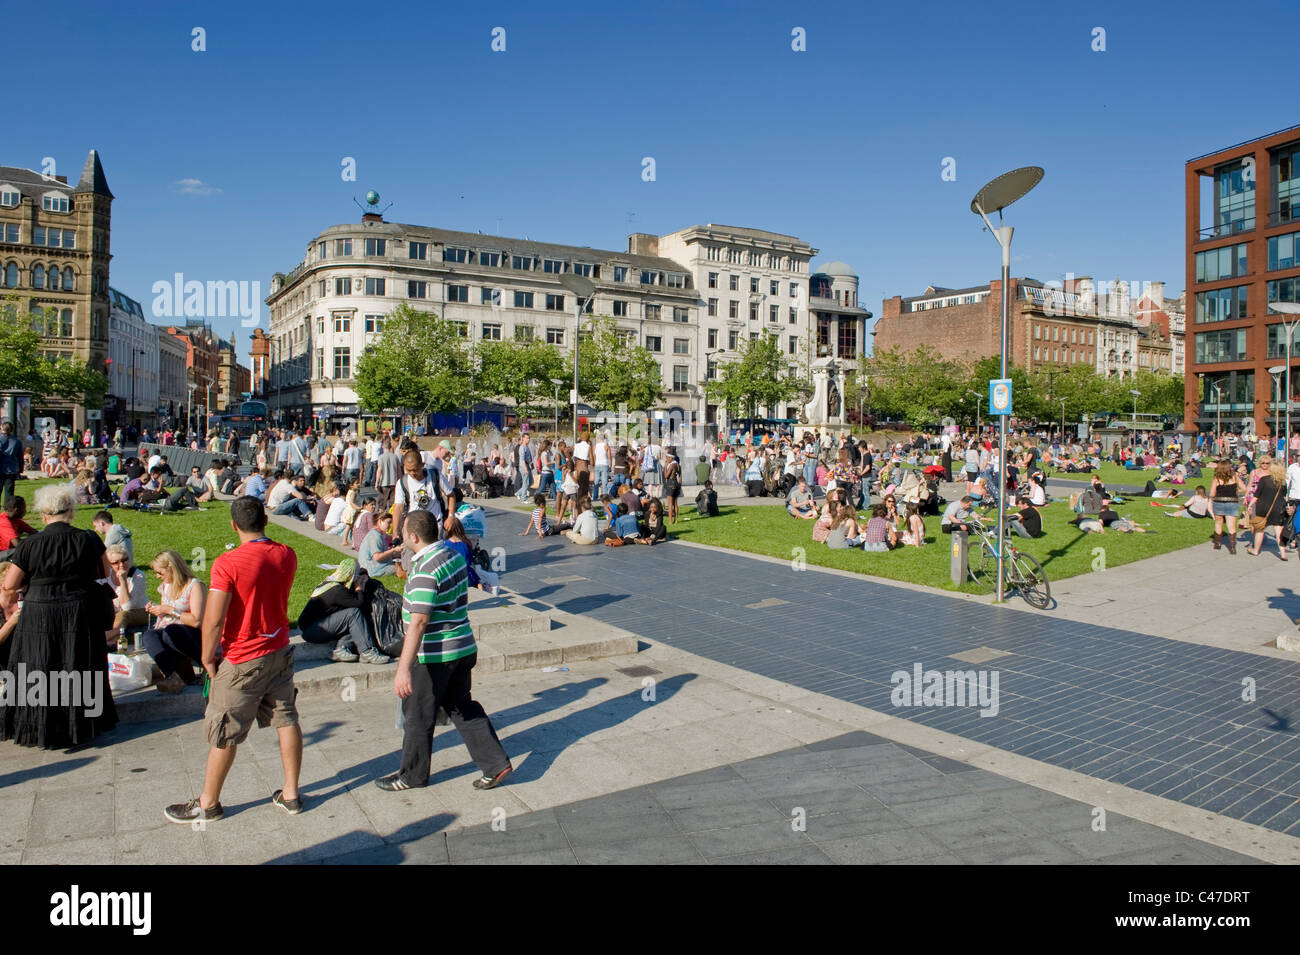 People congregate in the crowded Piccadilly Gardens, Manchester on a hot, sunny day. - Stock Image